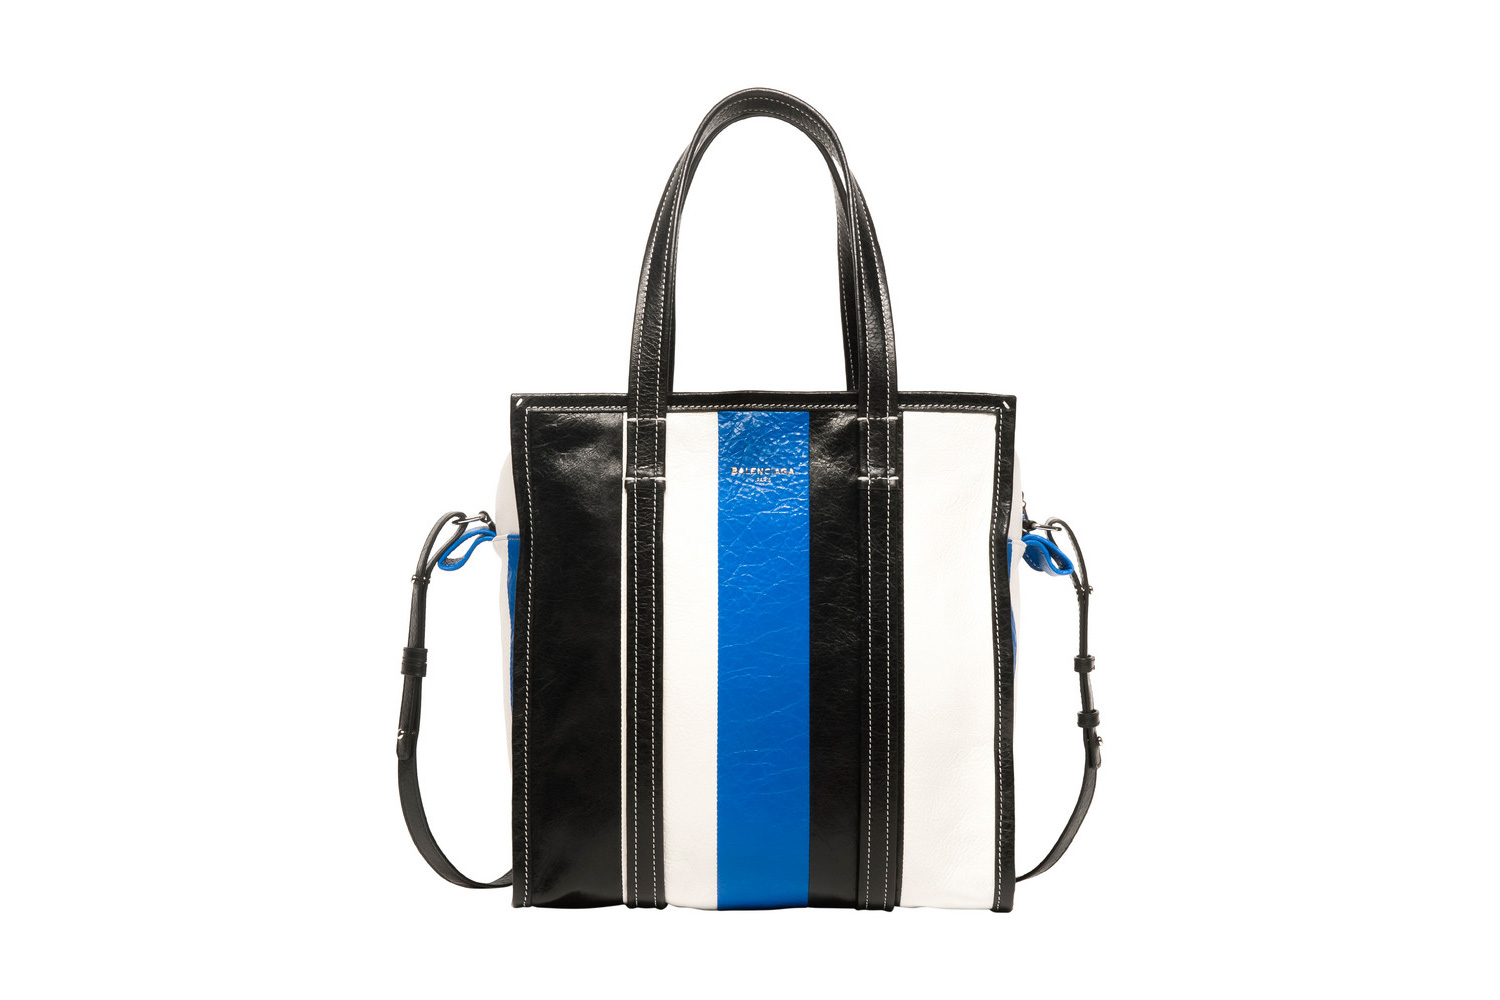 Balenciaga Bazar Bag - TRENDS periodical